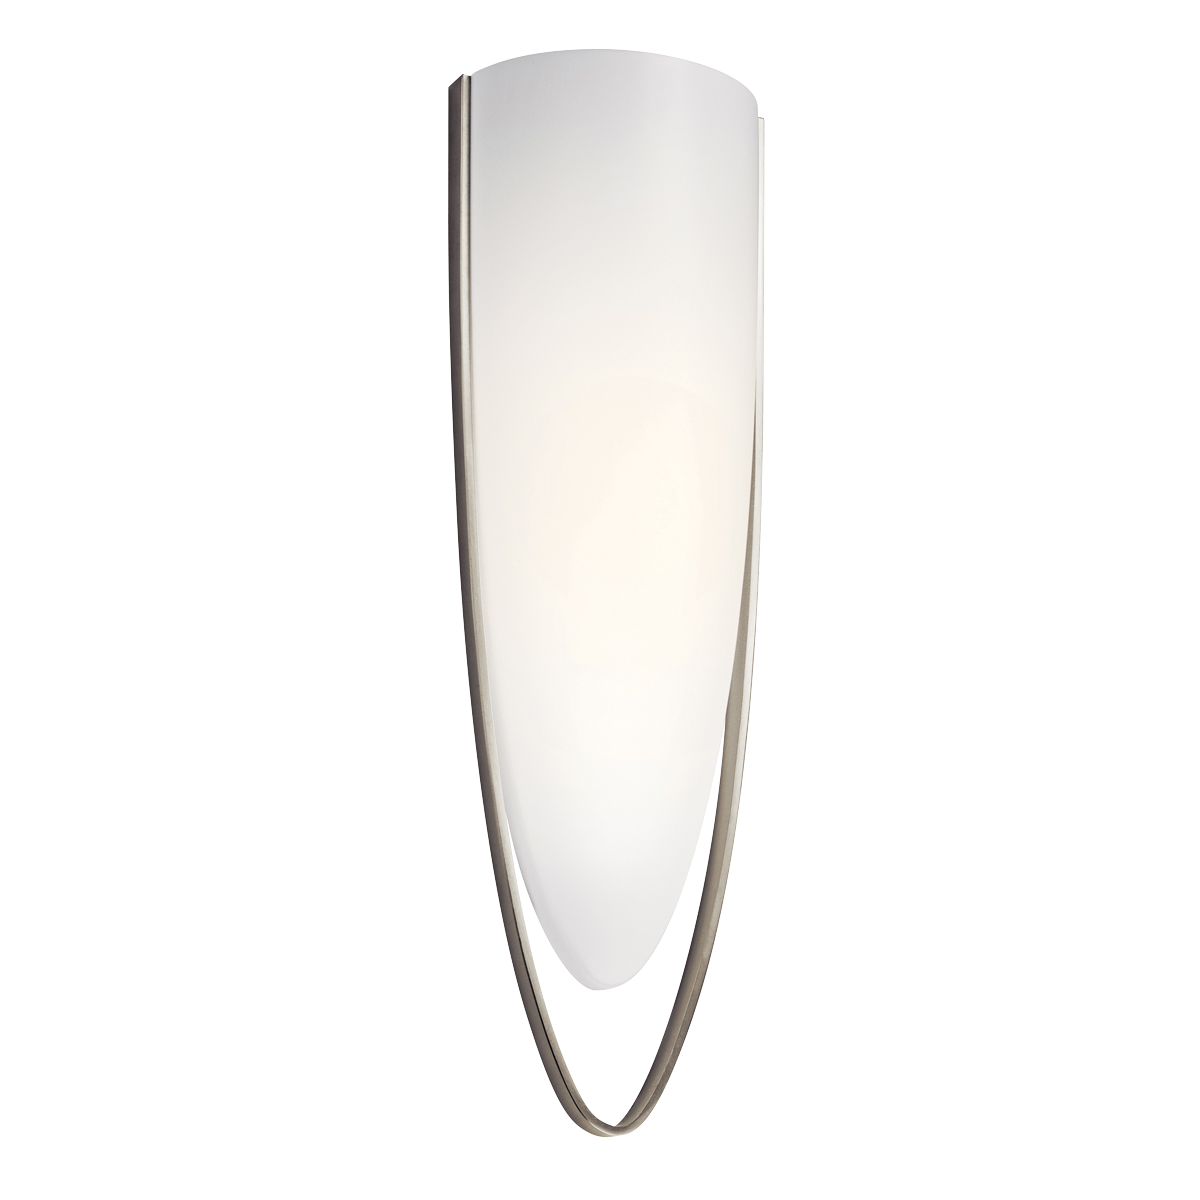 Cozy Eucia 1 Light Fluorescent Wall Sconce By Cardello Lighting And Decor For Home Ideas